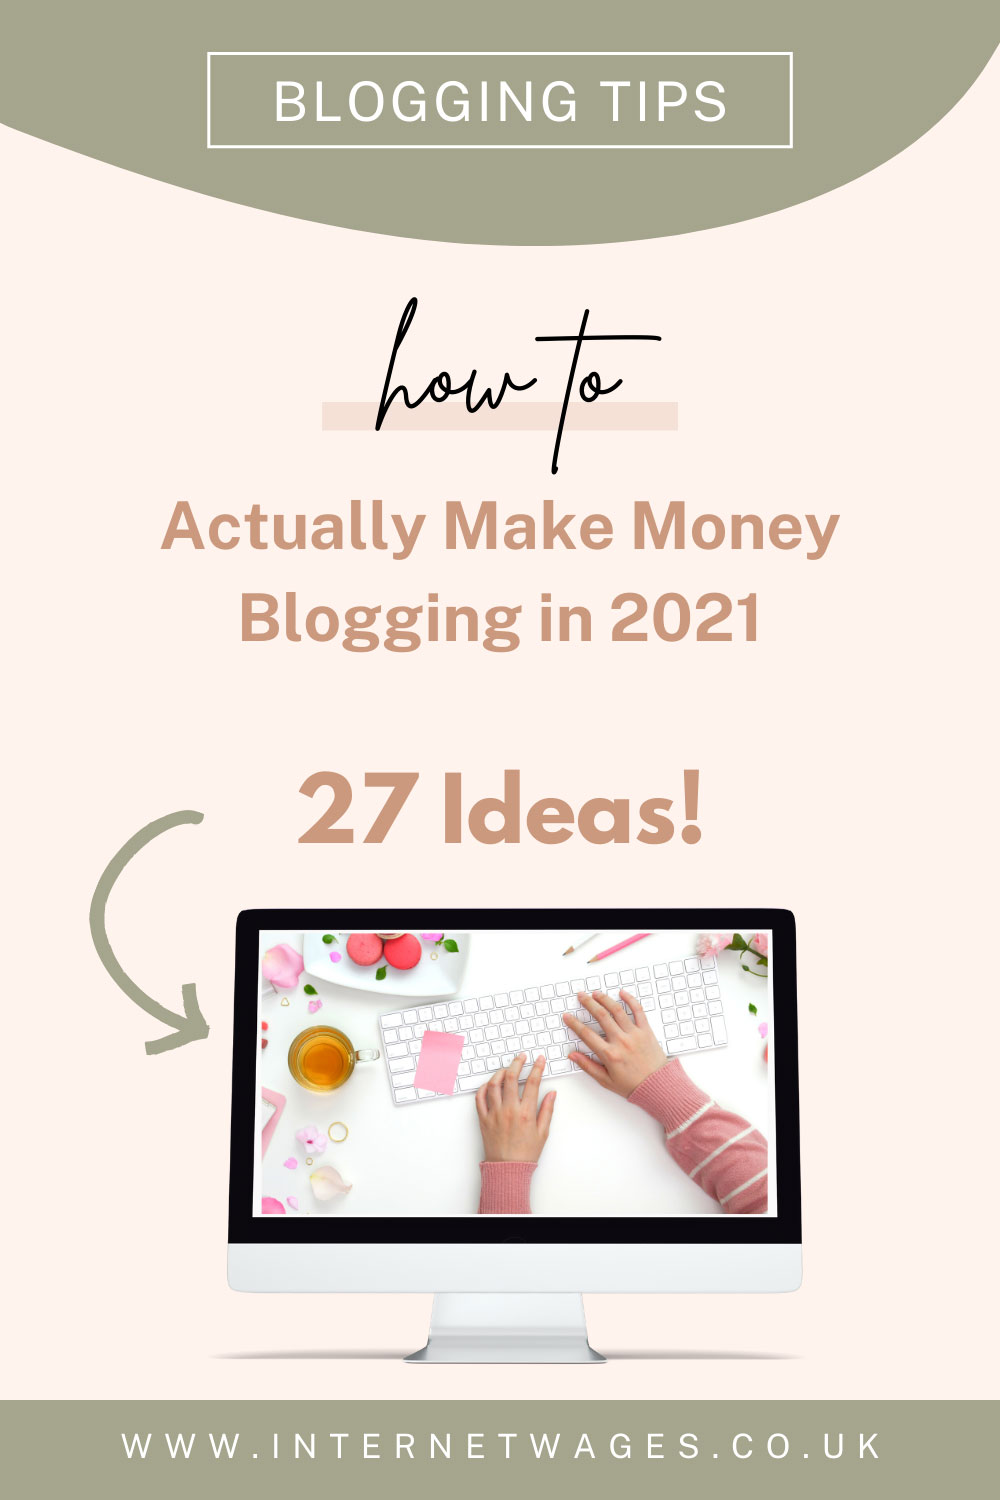 How To Actually Make Money Blogging in 2021. 27 Ideas For a Money Making Blog.